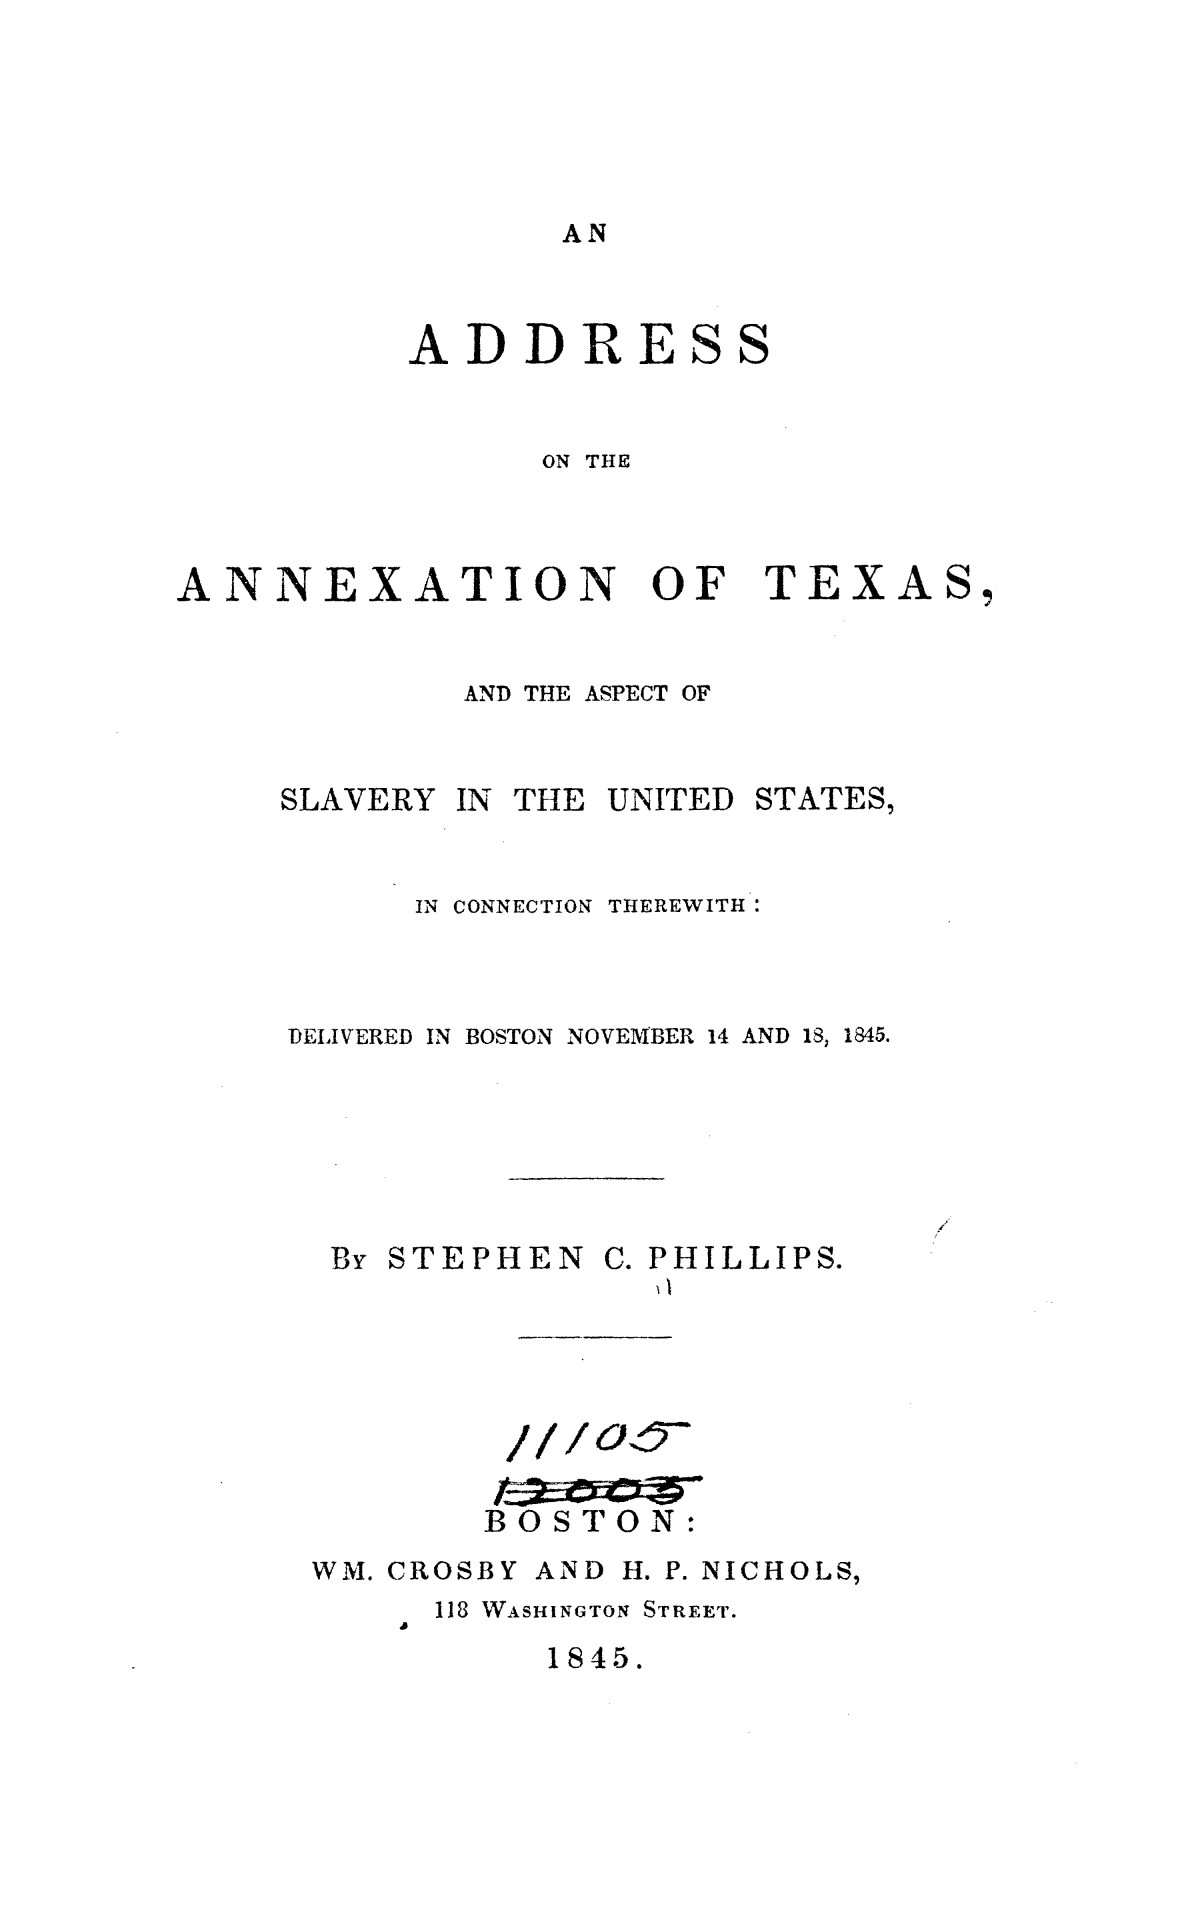 Address on the annexation of Texas, and the aspect of slavery in the United States, in connection therewith: delivered in Boston November 14 and 18, 1845                                                                                                      [Sequence #]: 1 of 56